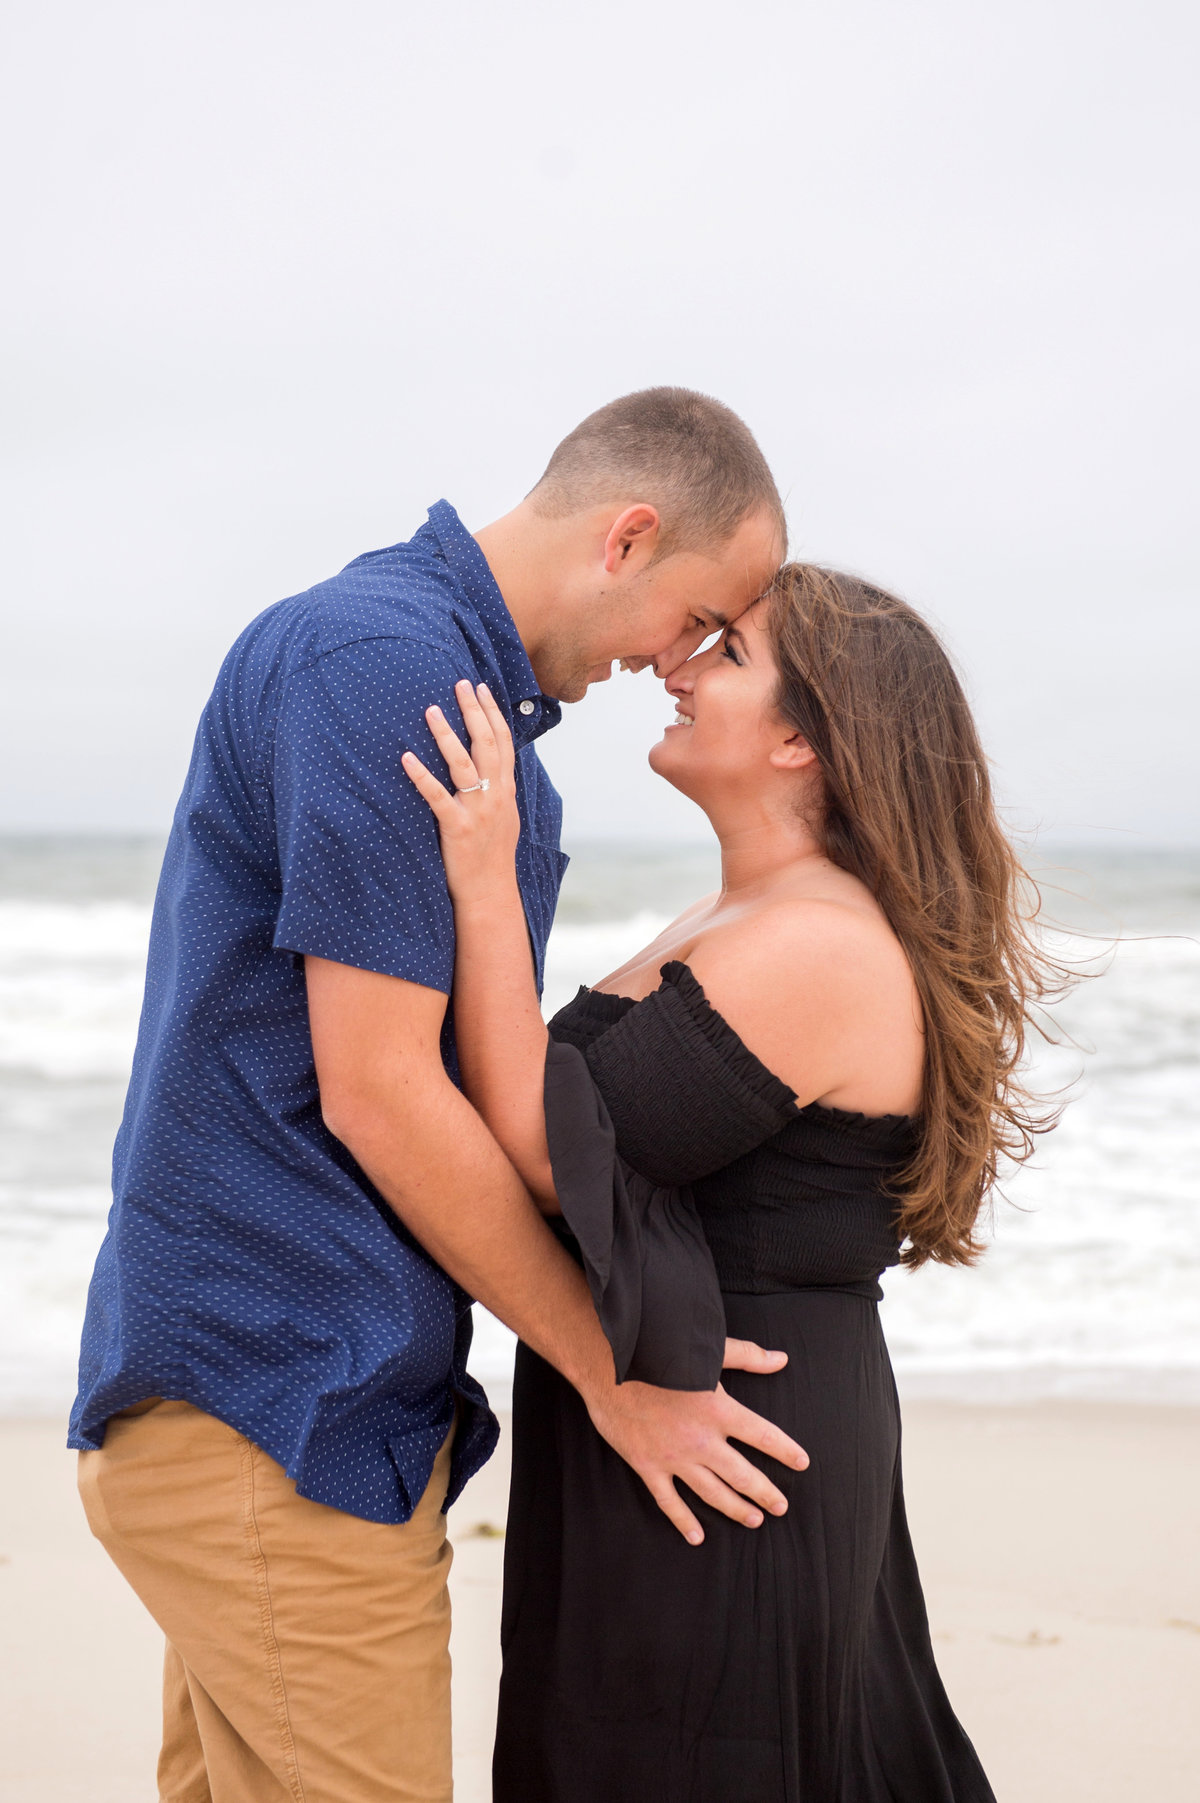 lavallette-beach-surprise-proposal-imagery-by-marianne-40